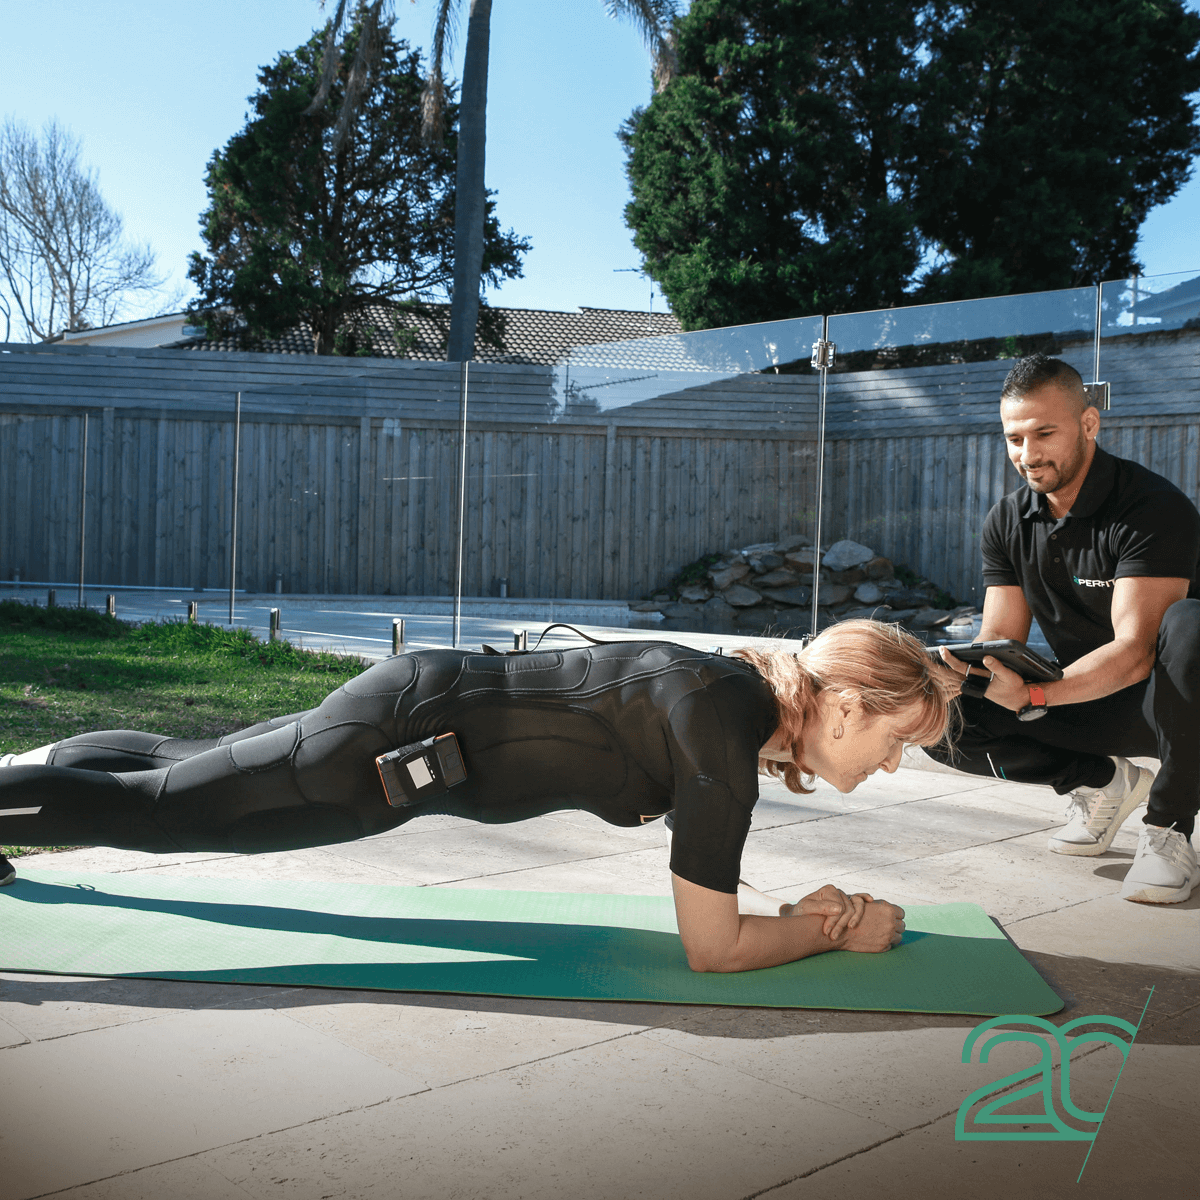 20PerFit Outdoor Mobile EMS Training With A Personal Trainer